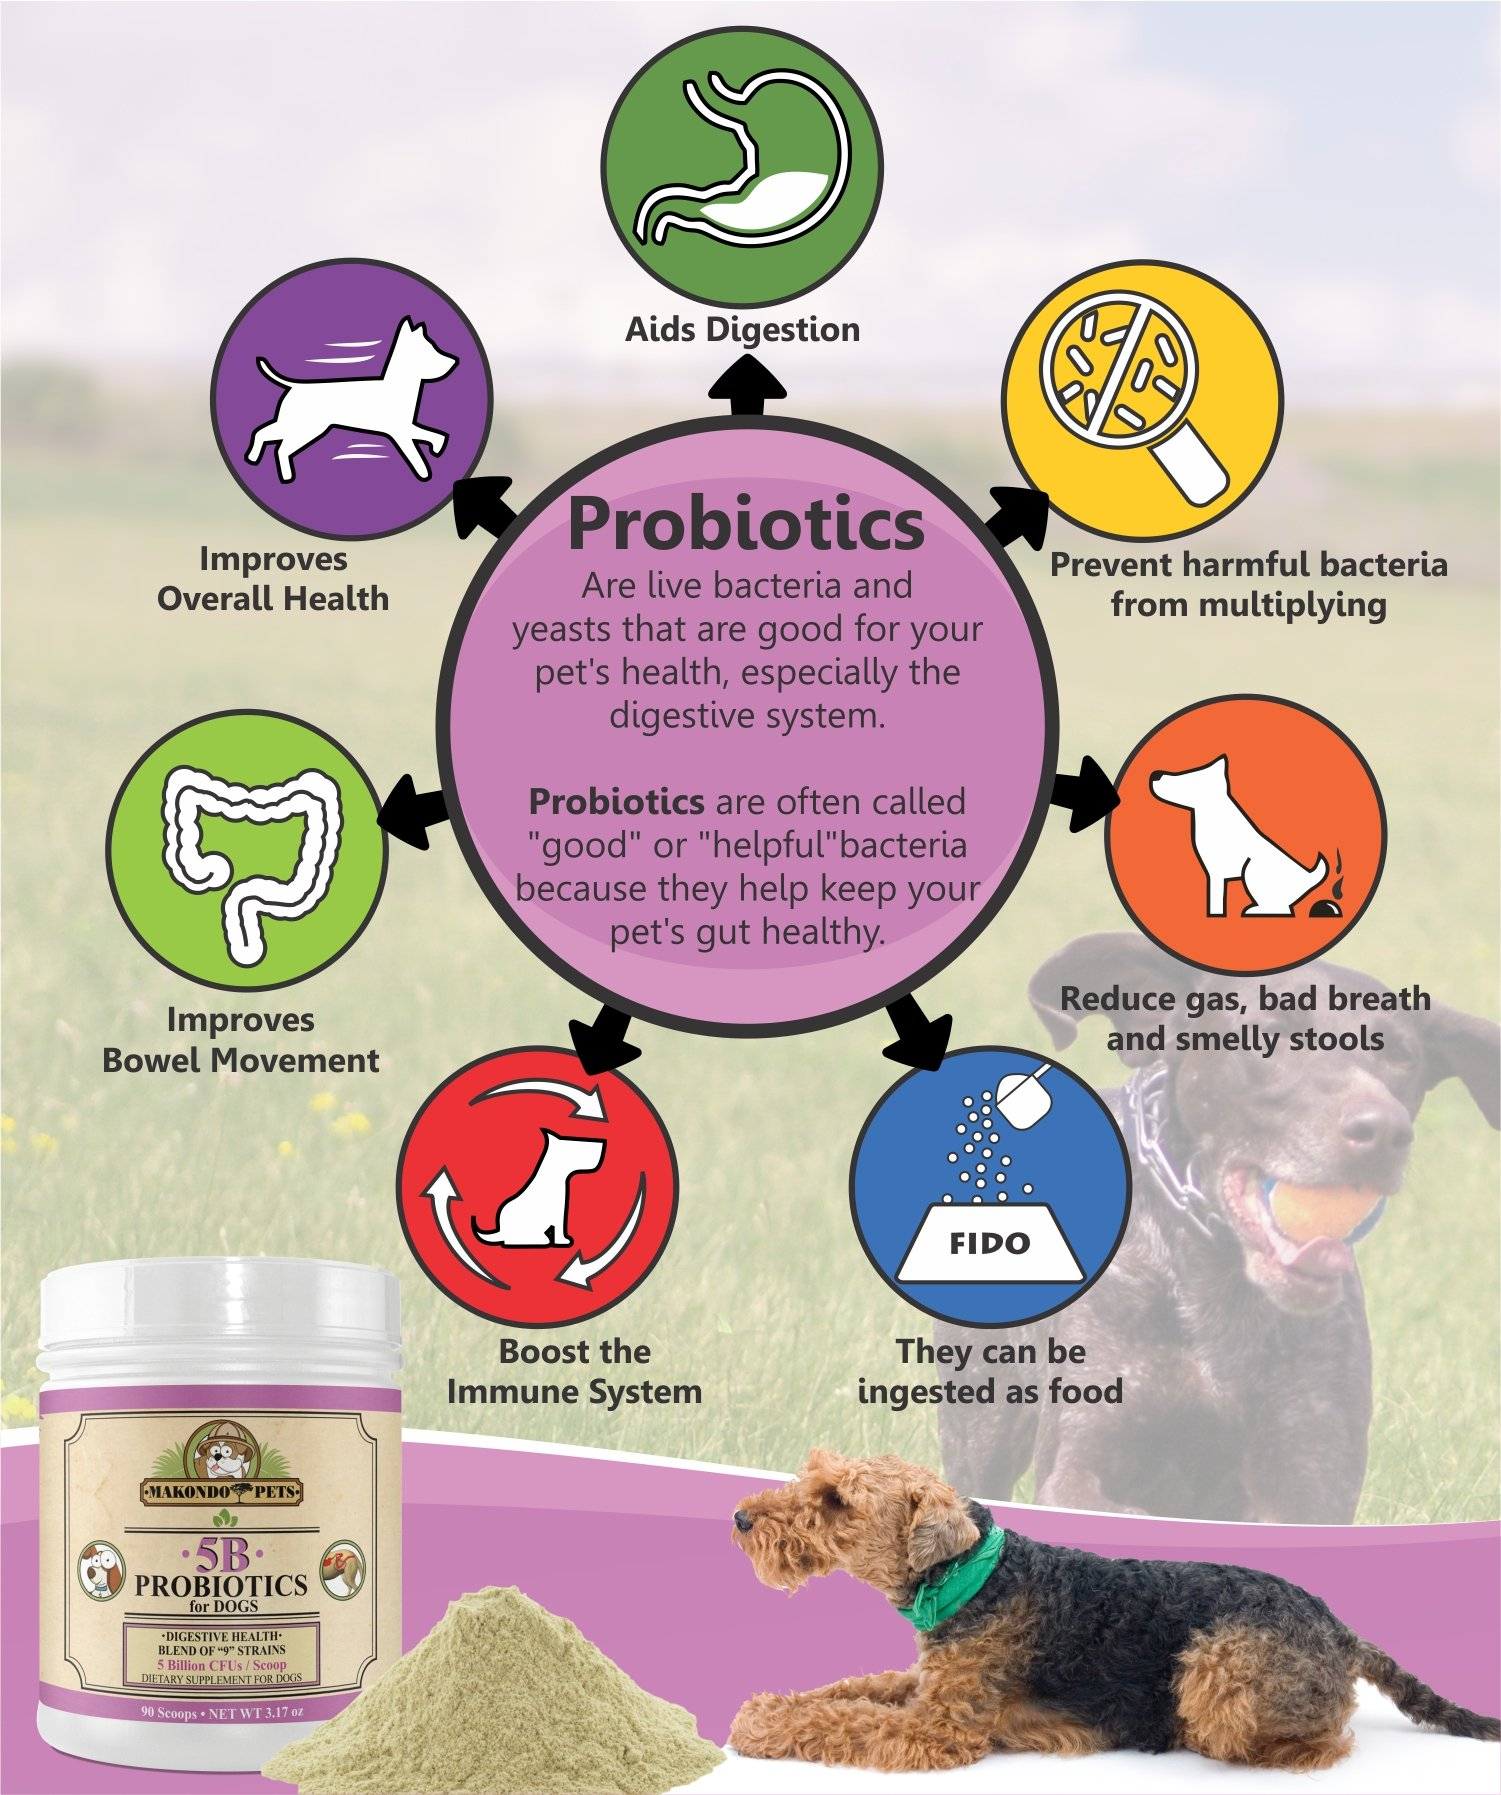 Makondo Pets Probiotics for Dogs & Puppies – Flavored, Made in USA, Extra Strength 9 Species Digestive Support Tummy Relief Enzyme Powder, 5 Billion CFUs per Scoop – 90 Scoops per Tub, 3.17 oz by Makondo Pets (Image #4)